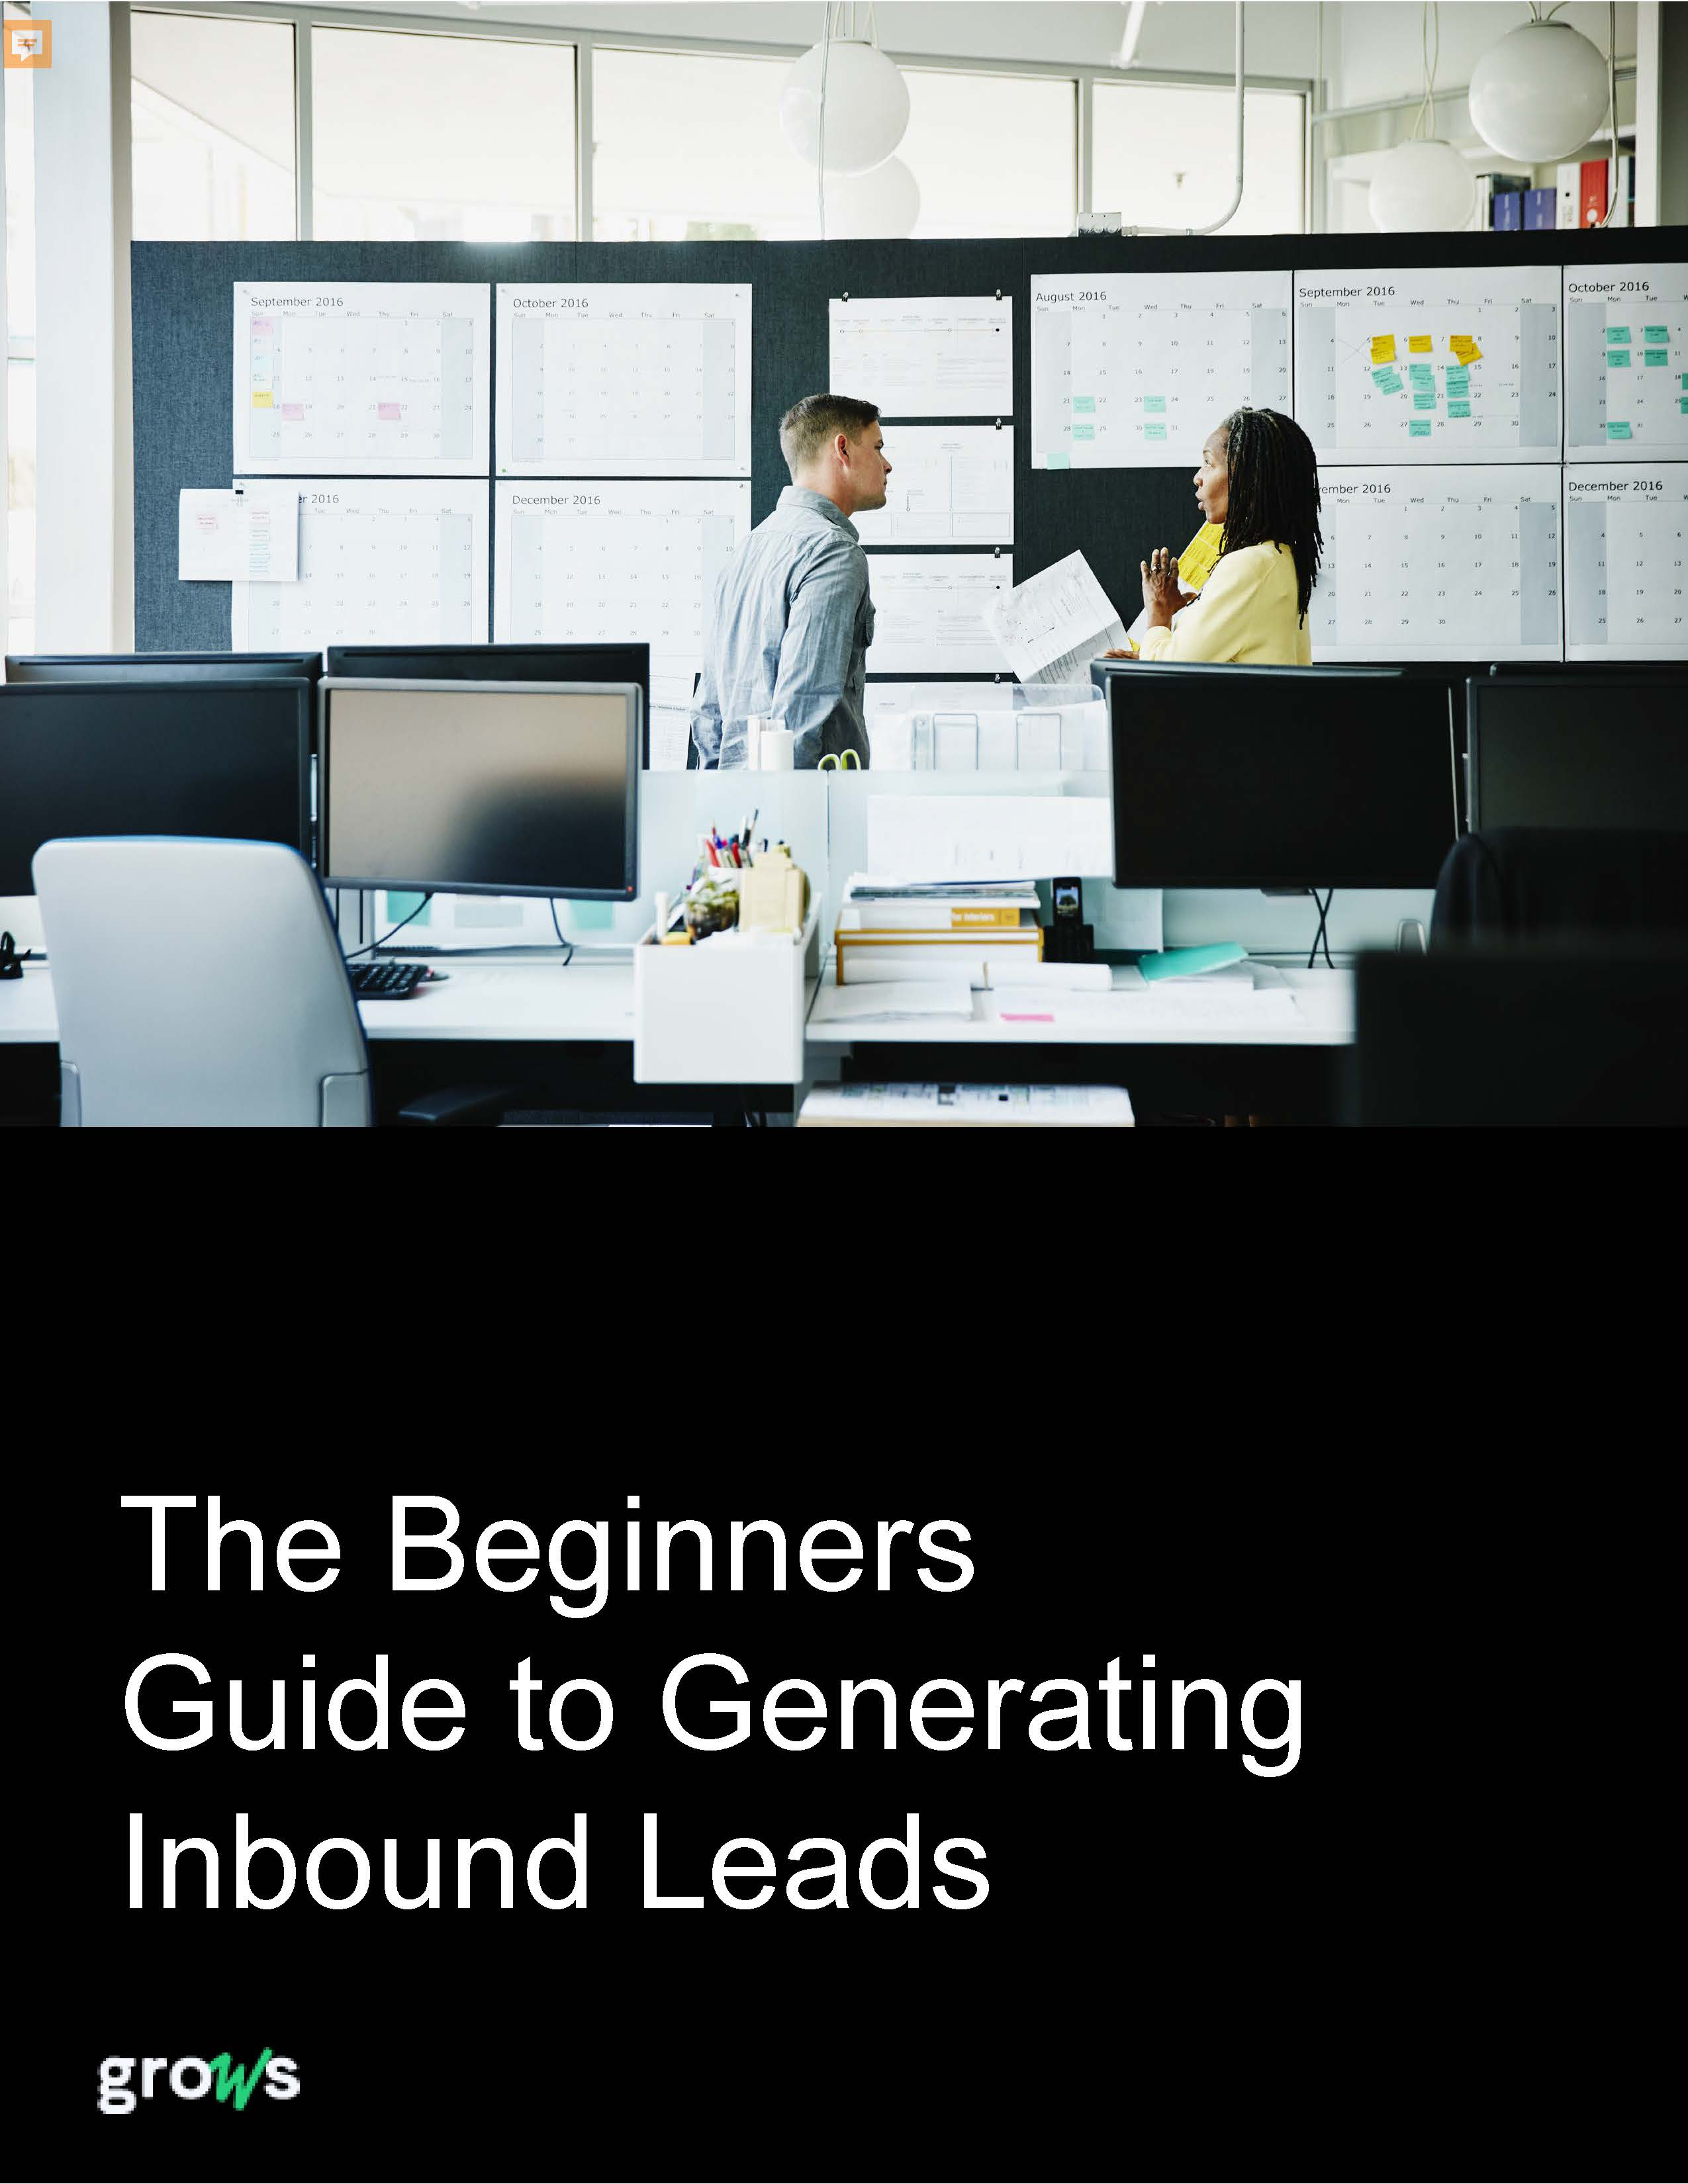 Grows-Hubspot - The Beginners Guide to Generating Inbound Leads_Página_01